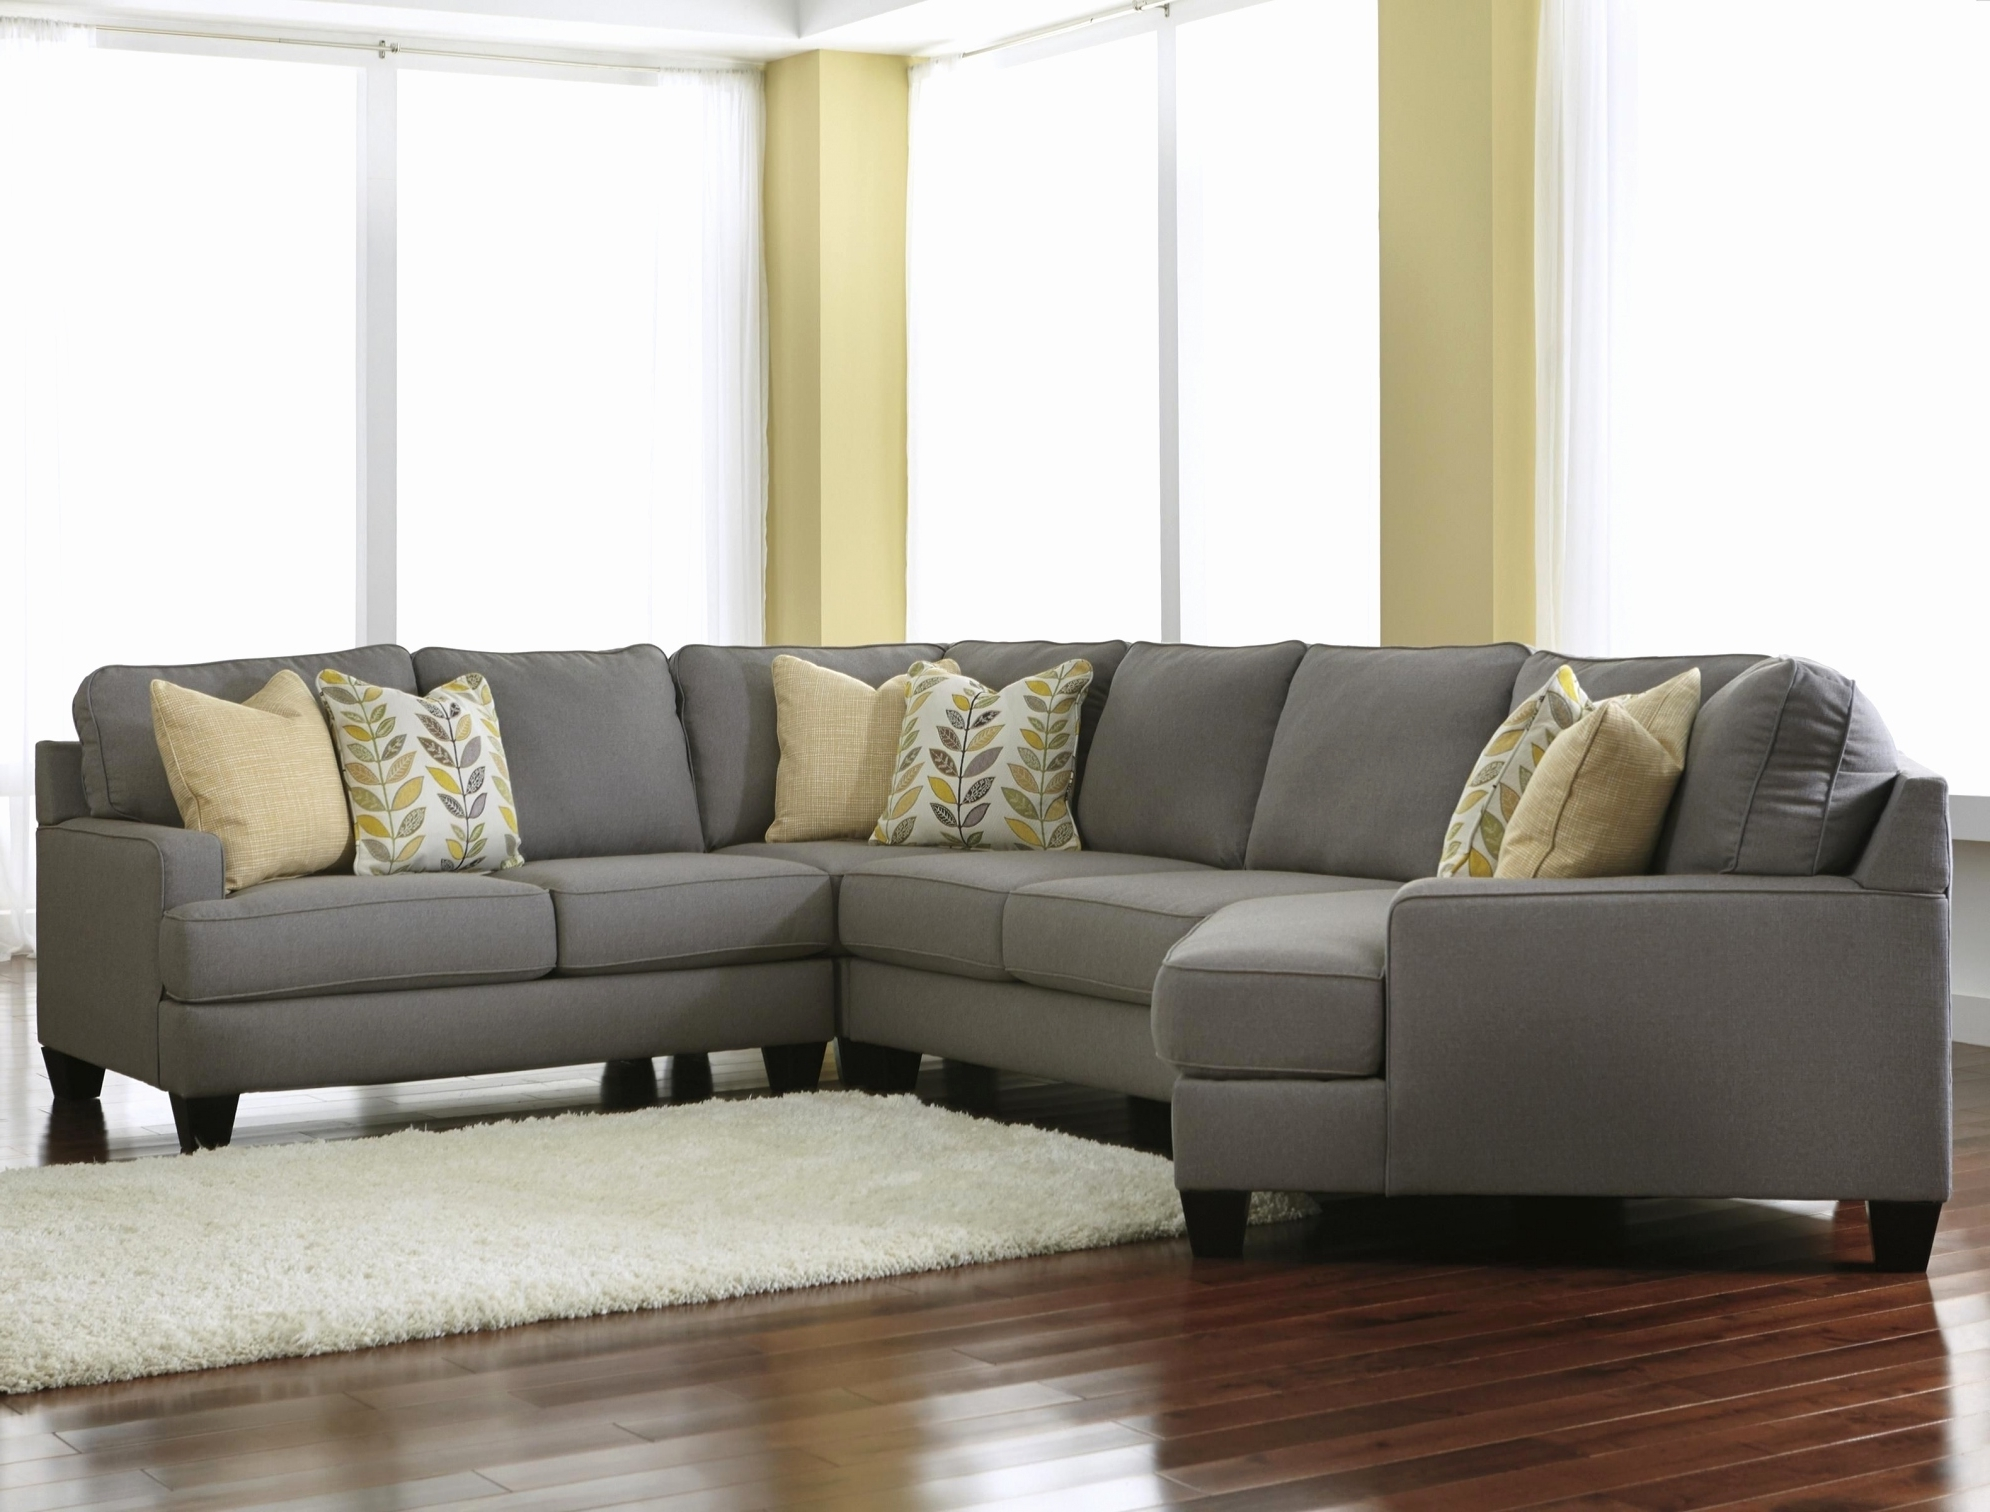 Fashionable Des Moines Ia Sectional Sofas Regarding 32 Lovely Sectional Sofas Clearance Photos – Sectional Sofa Design (View 9 of 20)